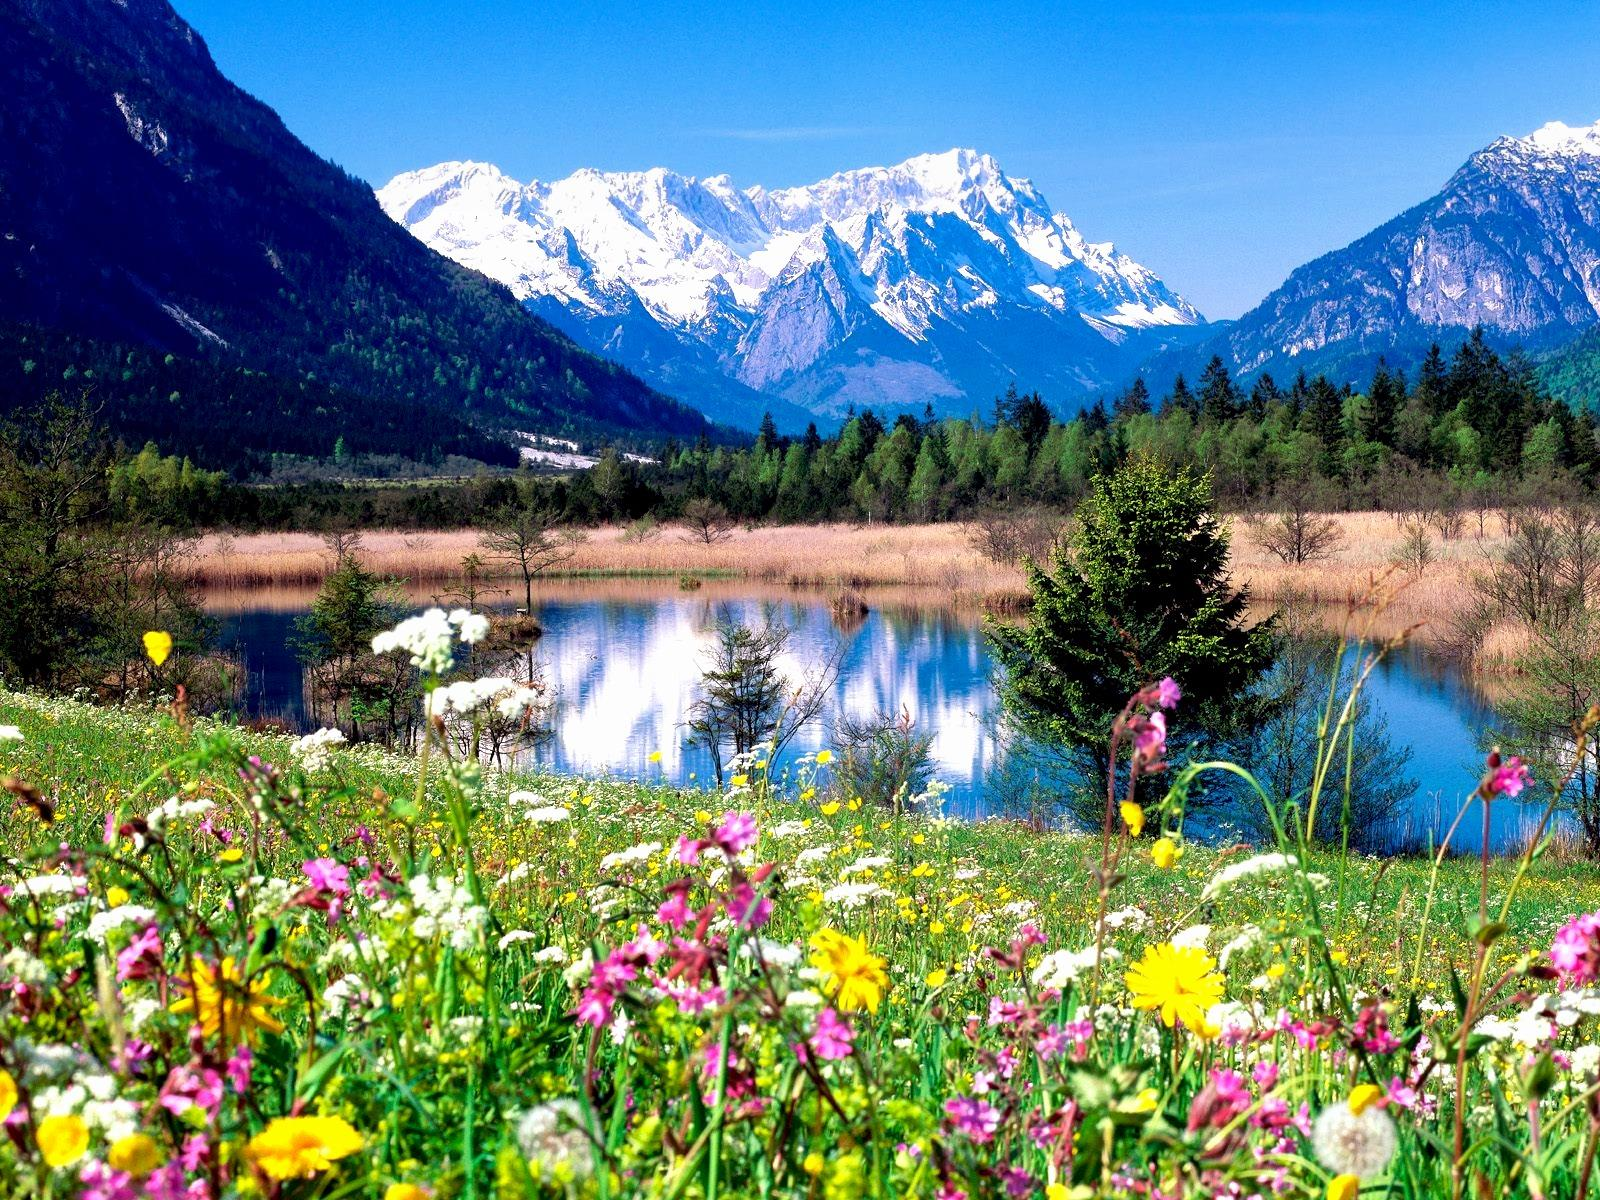 hd wallpapers 1600x1200: Spring HD Wallpapers Backgrounds Wallpaper 1600x1200